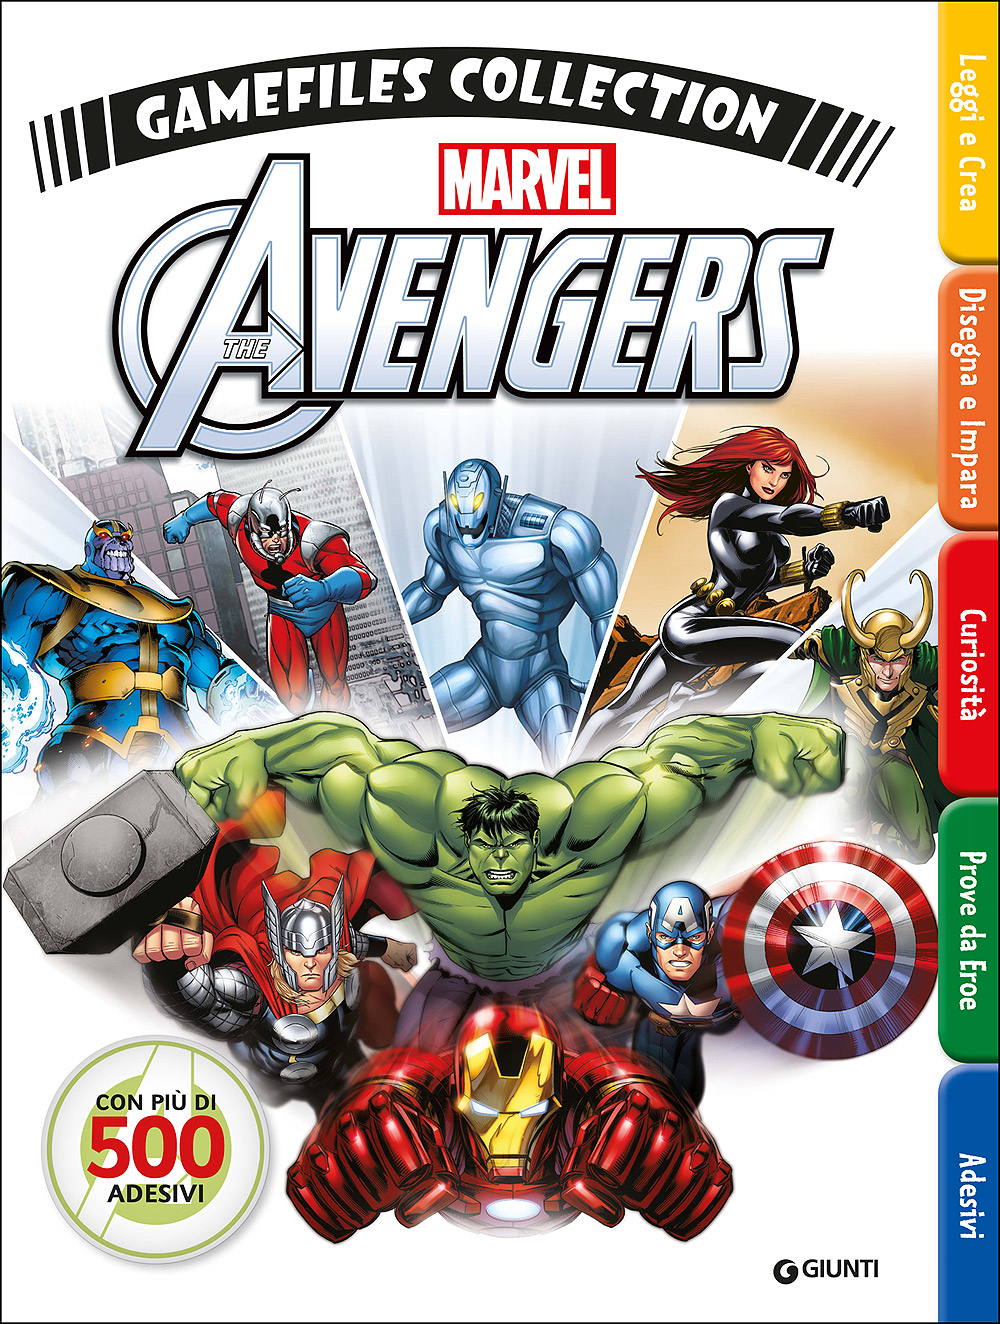 Avengers - Gamefiles Collection